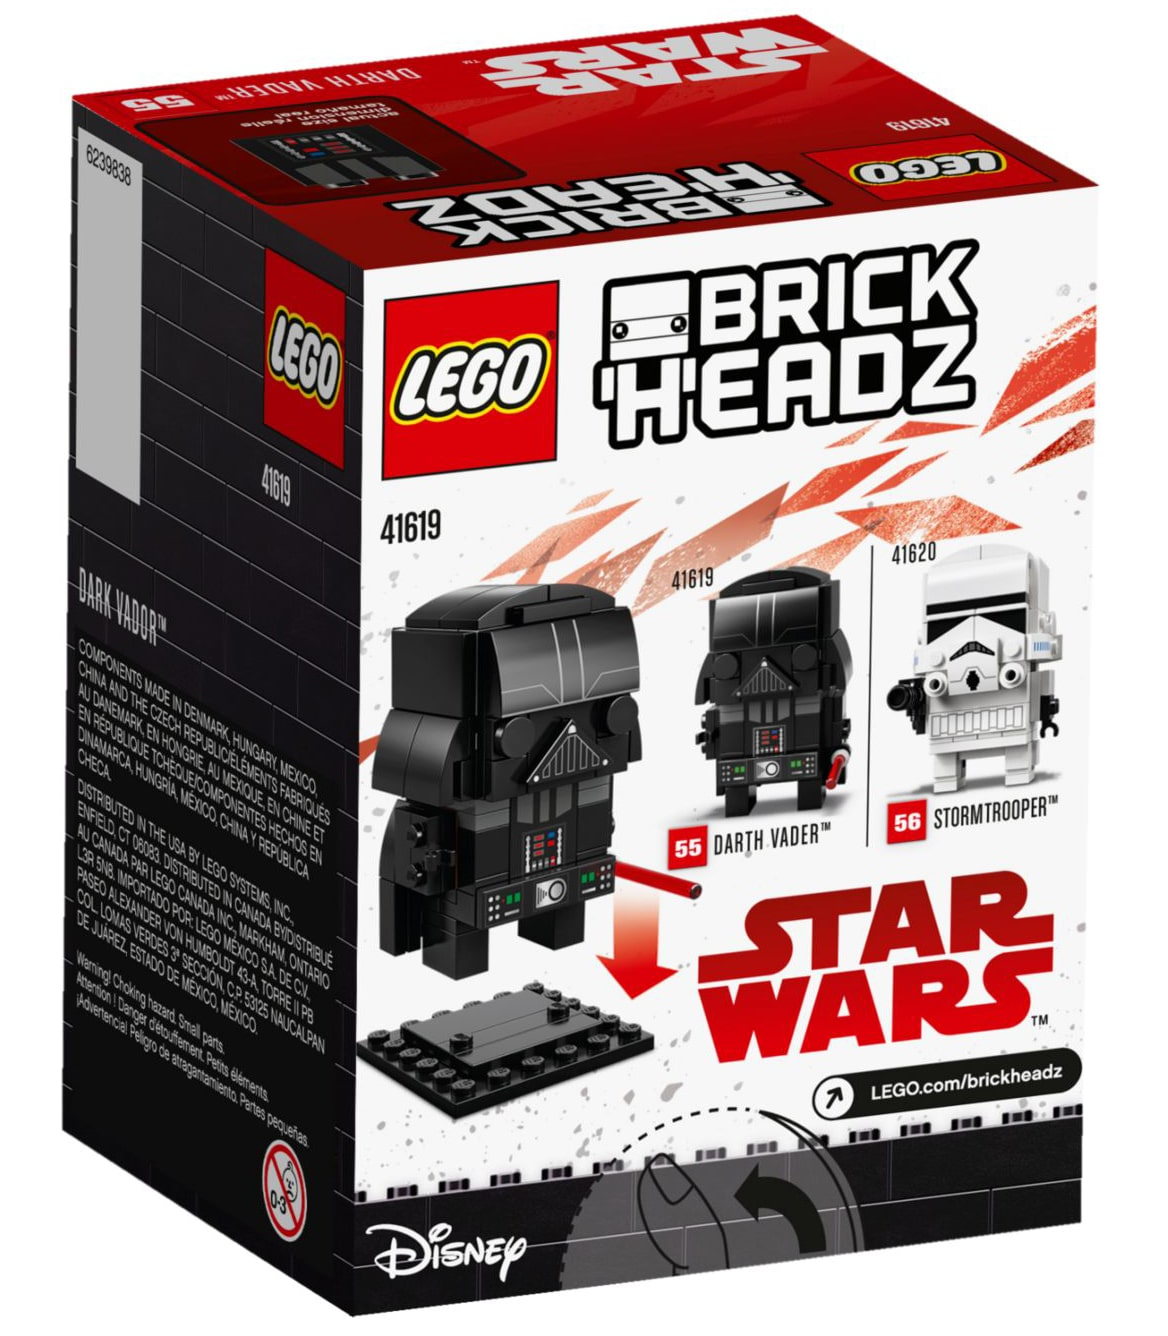 LEGO 41619 Darth Vader BrickHeadz Box hinten